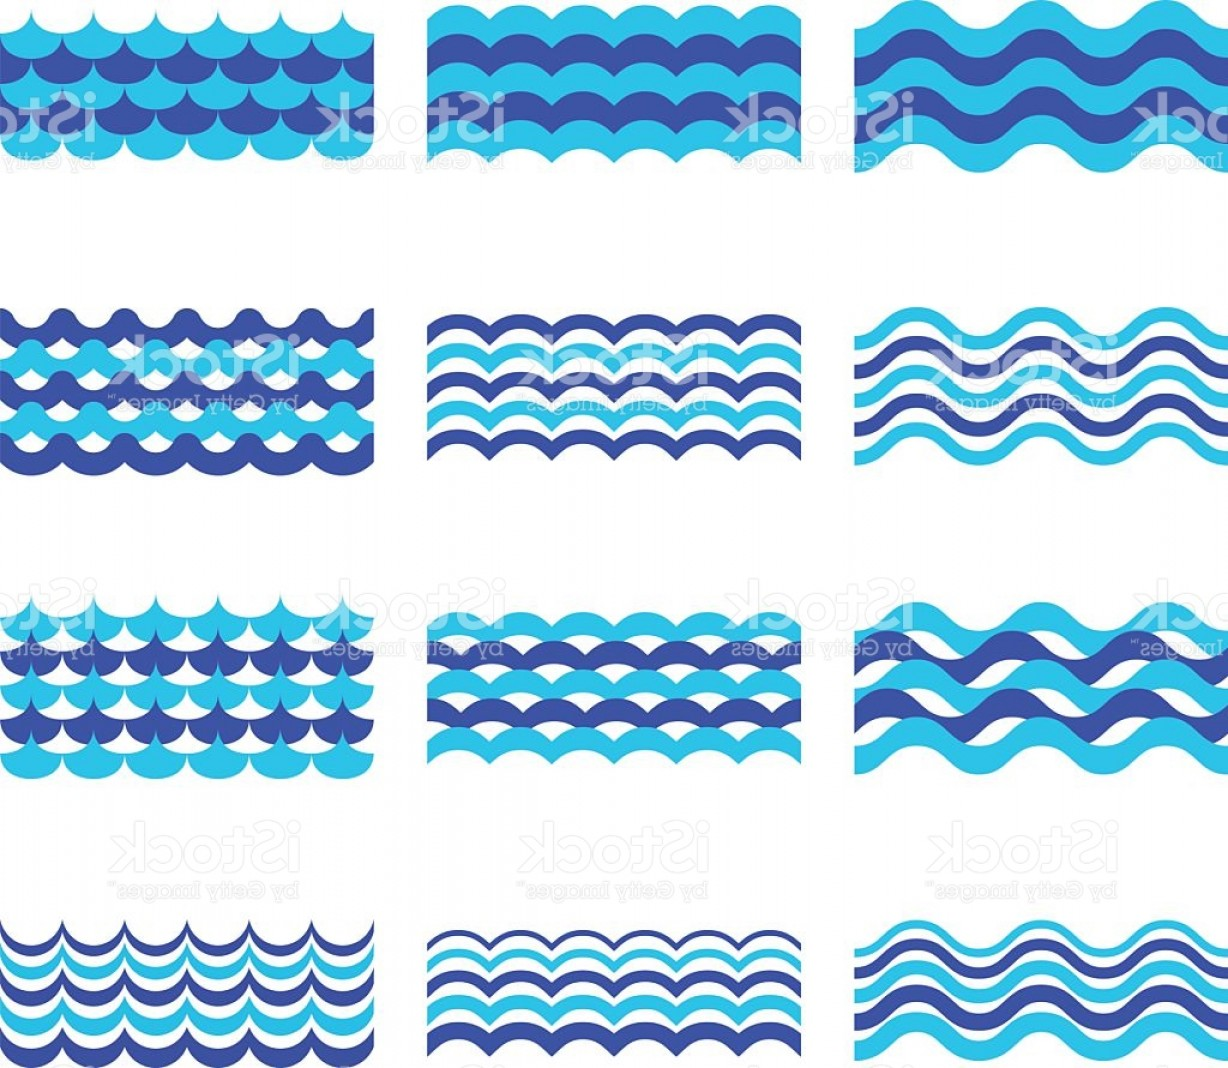 Ocean Wave Vector Illustration: Marine Sea Ocean Waves Vector Set Gm